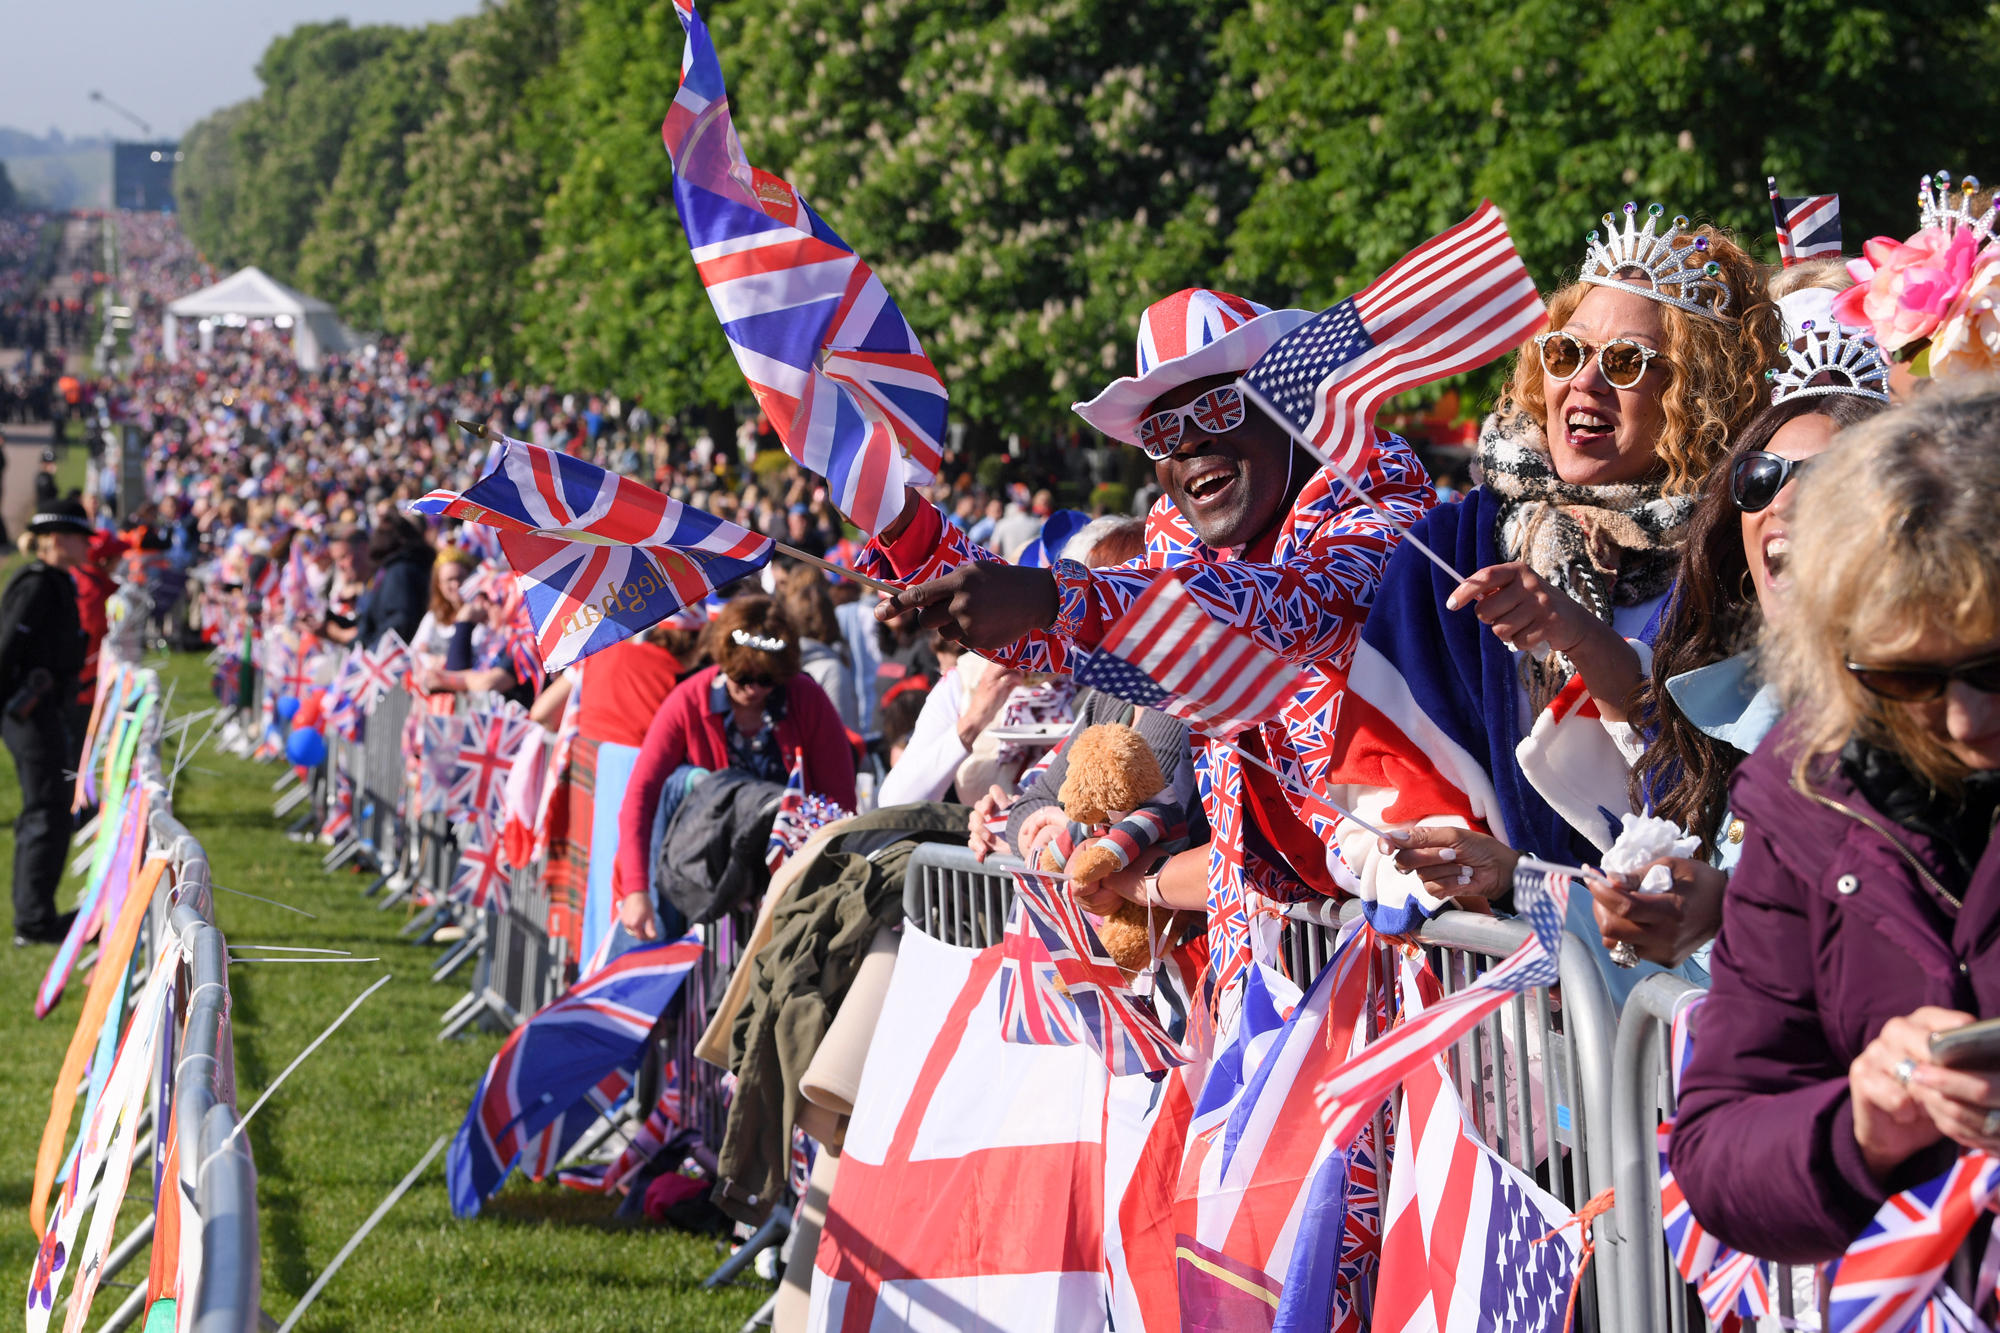 The wedding of Prince Harry and Meghan Markle, Preparations, Windsor, Berkshire, UK -  19 May 2018